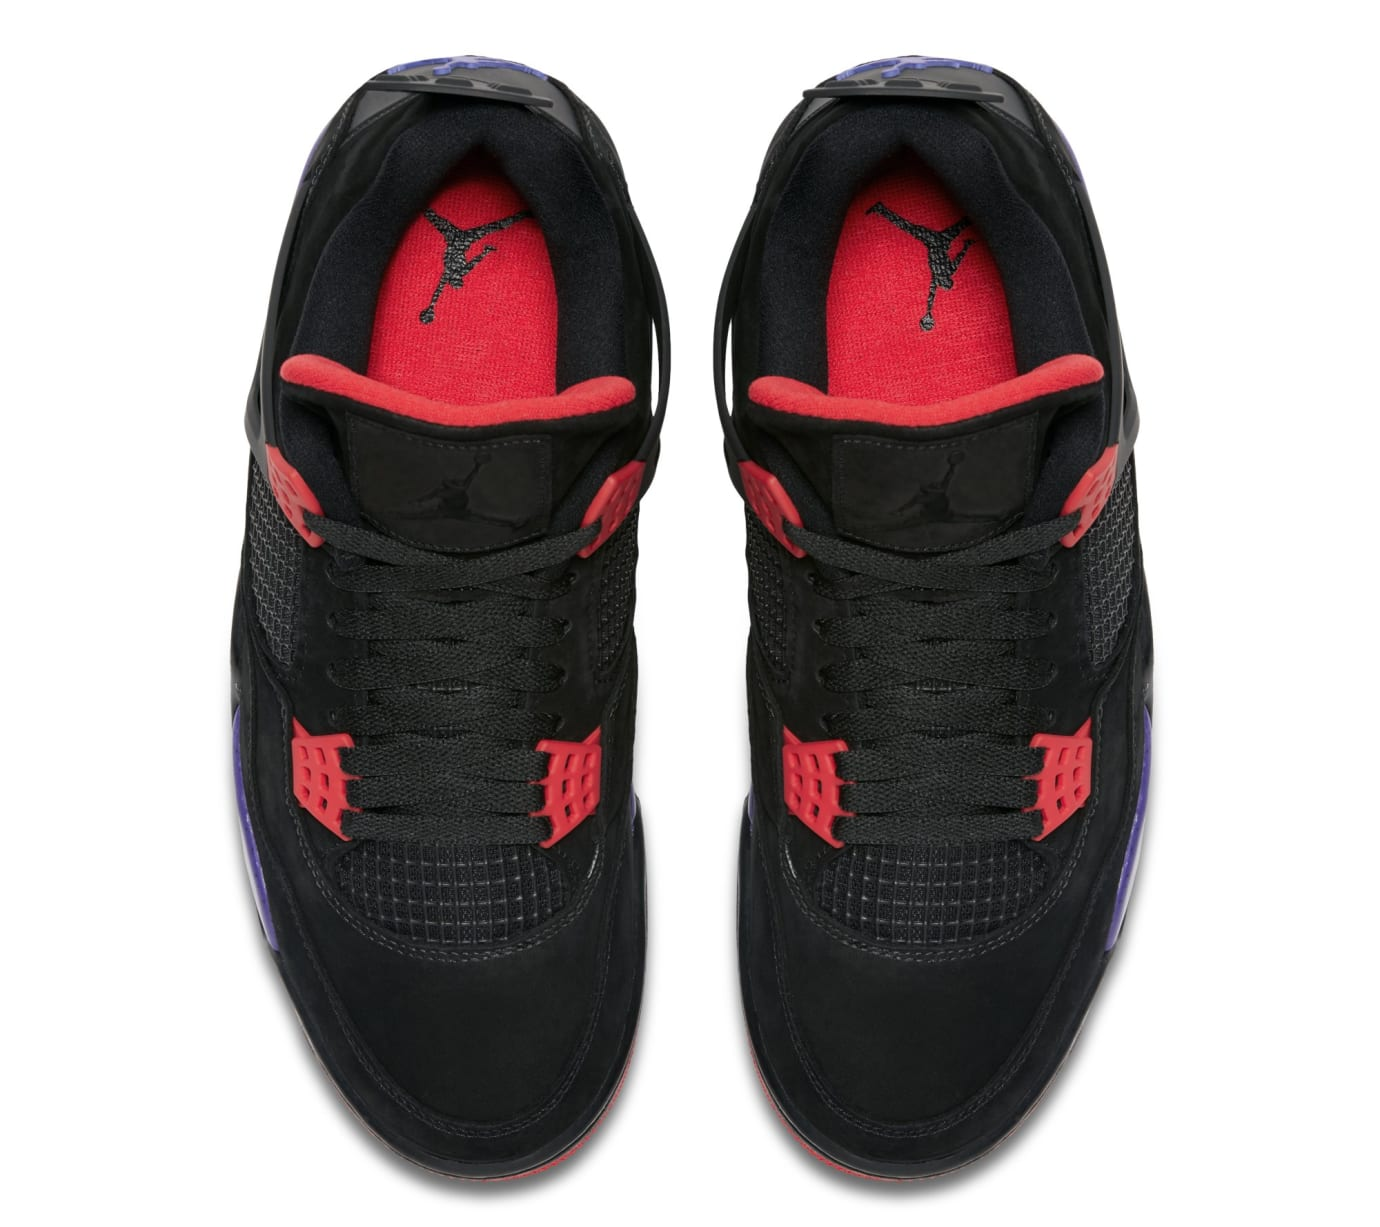 49b86b682853b7 Air Jordan 4 Retro NRG  Black University Red Court Purple   AQ3816 ...